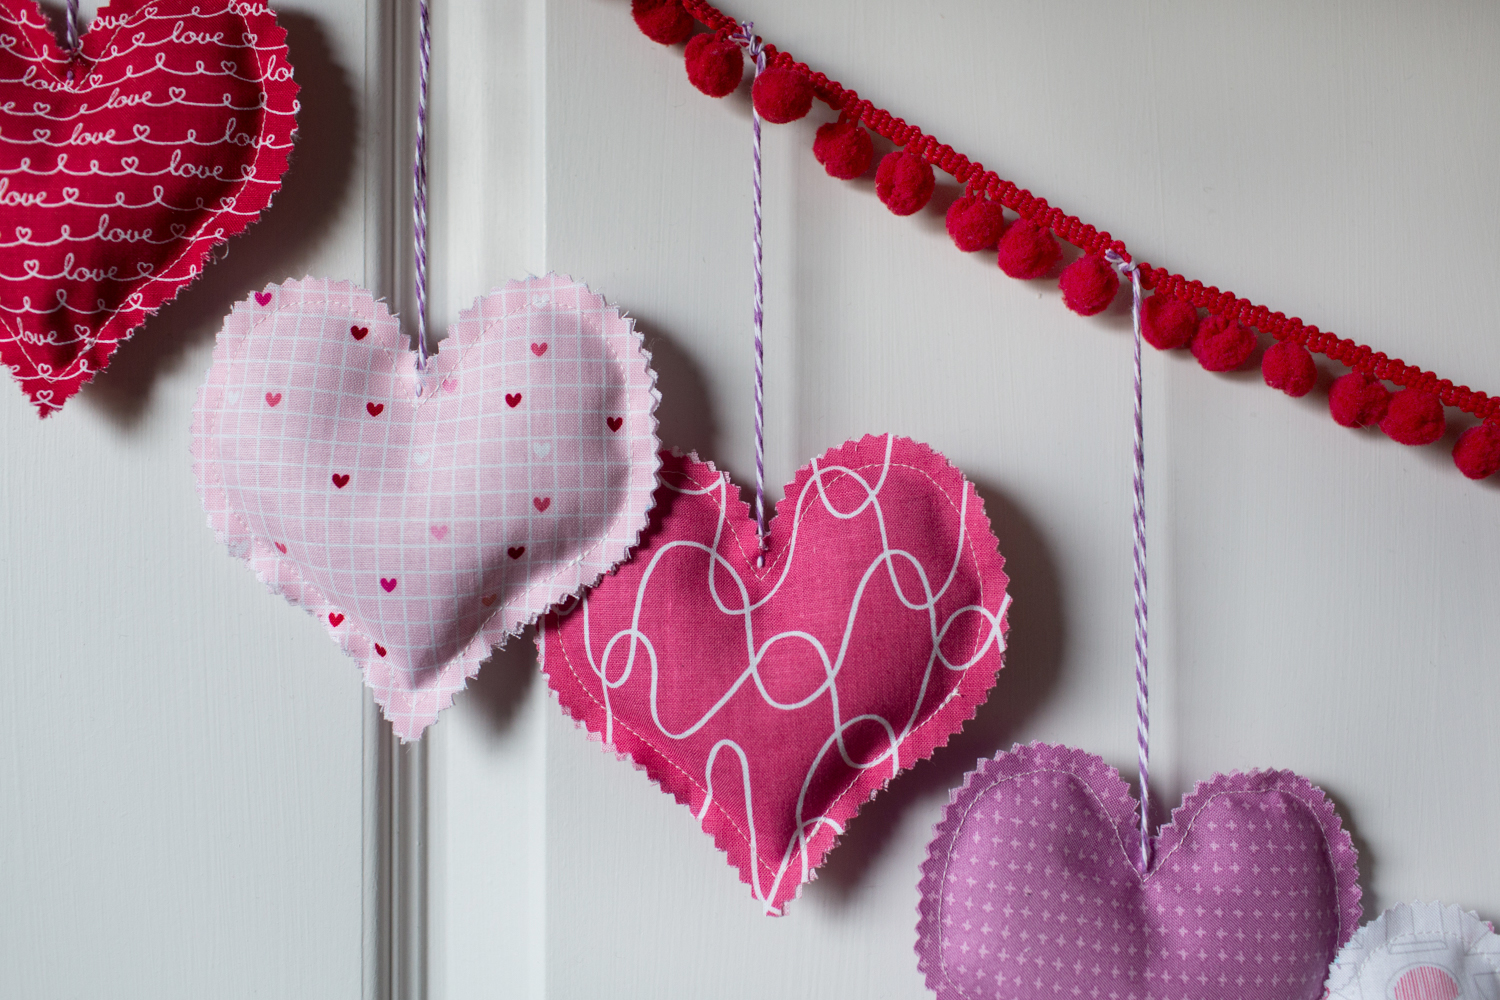 Lavender Sachet Heart Bunting Tutorial at We All Sew